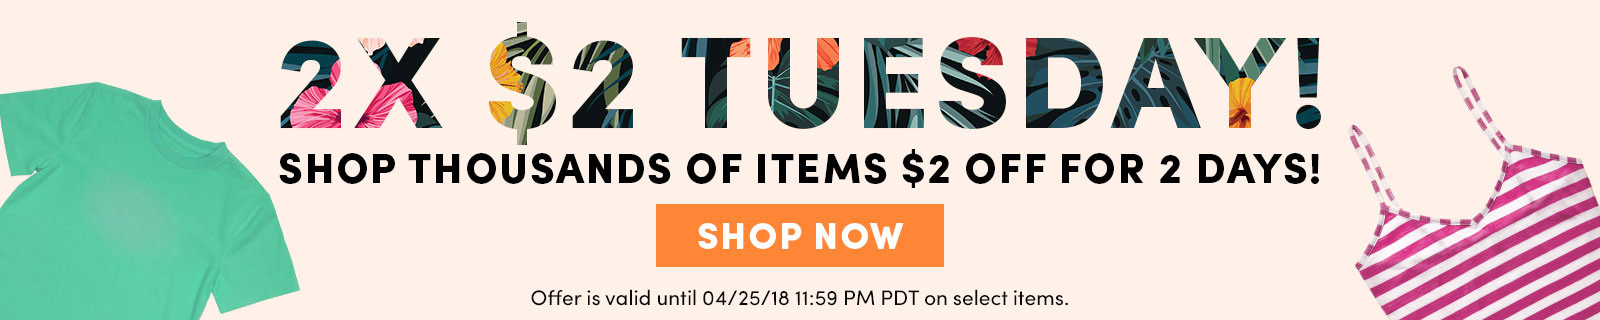 TWOSDAY IS HERE! Save $2 on select tees, tanks, and tops now through Wednesday.